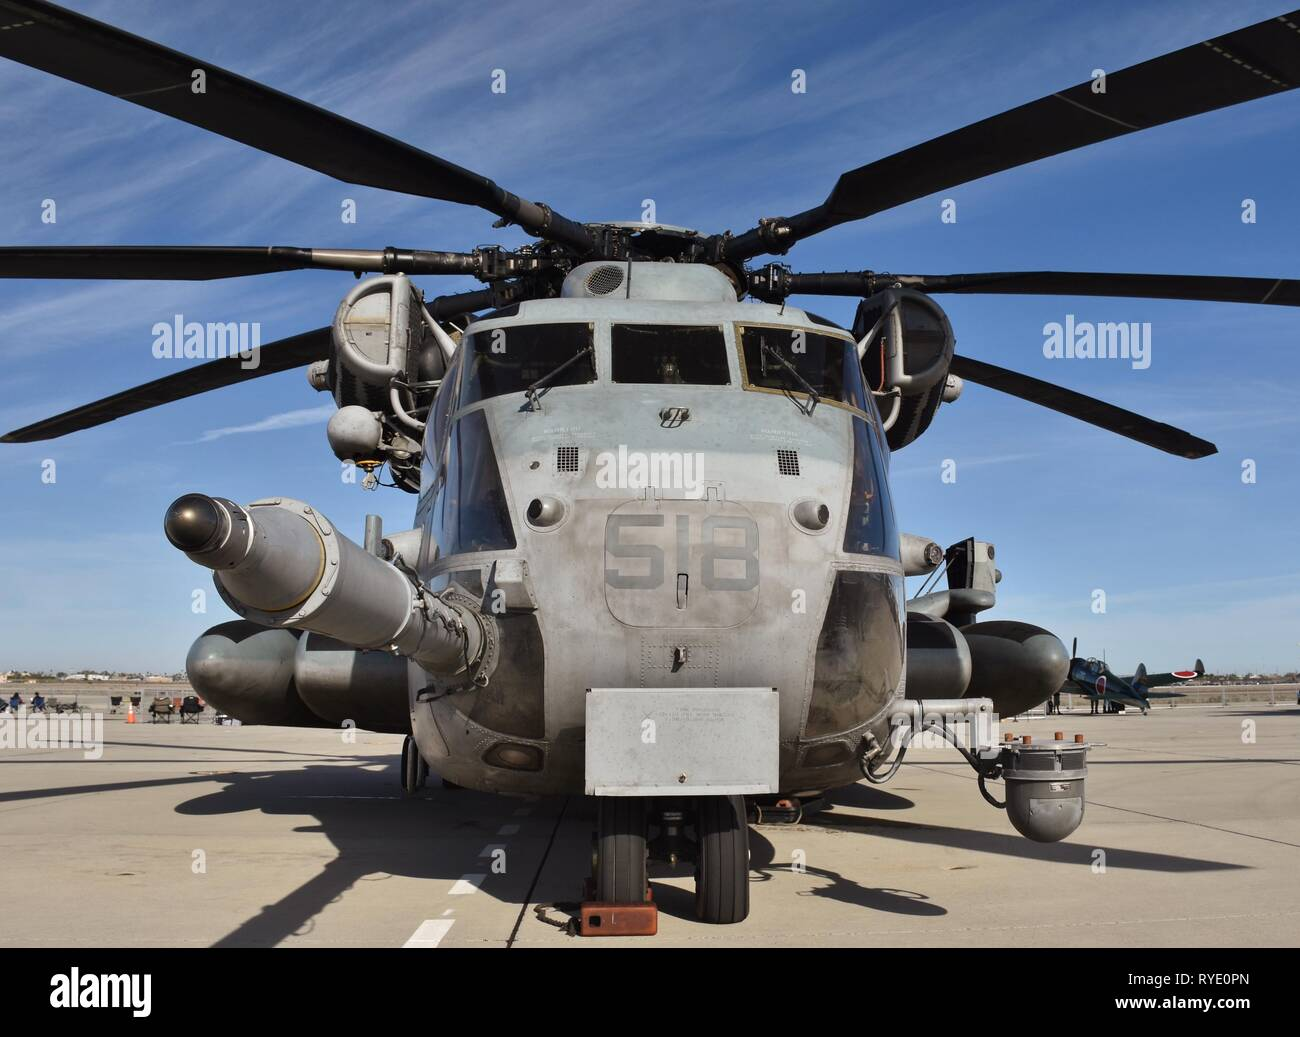 A Marine Corps Sikorsky CH-53E Super Stallion on the runway at MCAS Yuma. Stock Photo